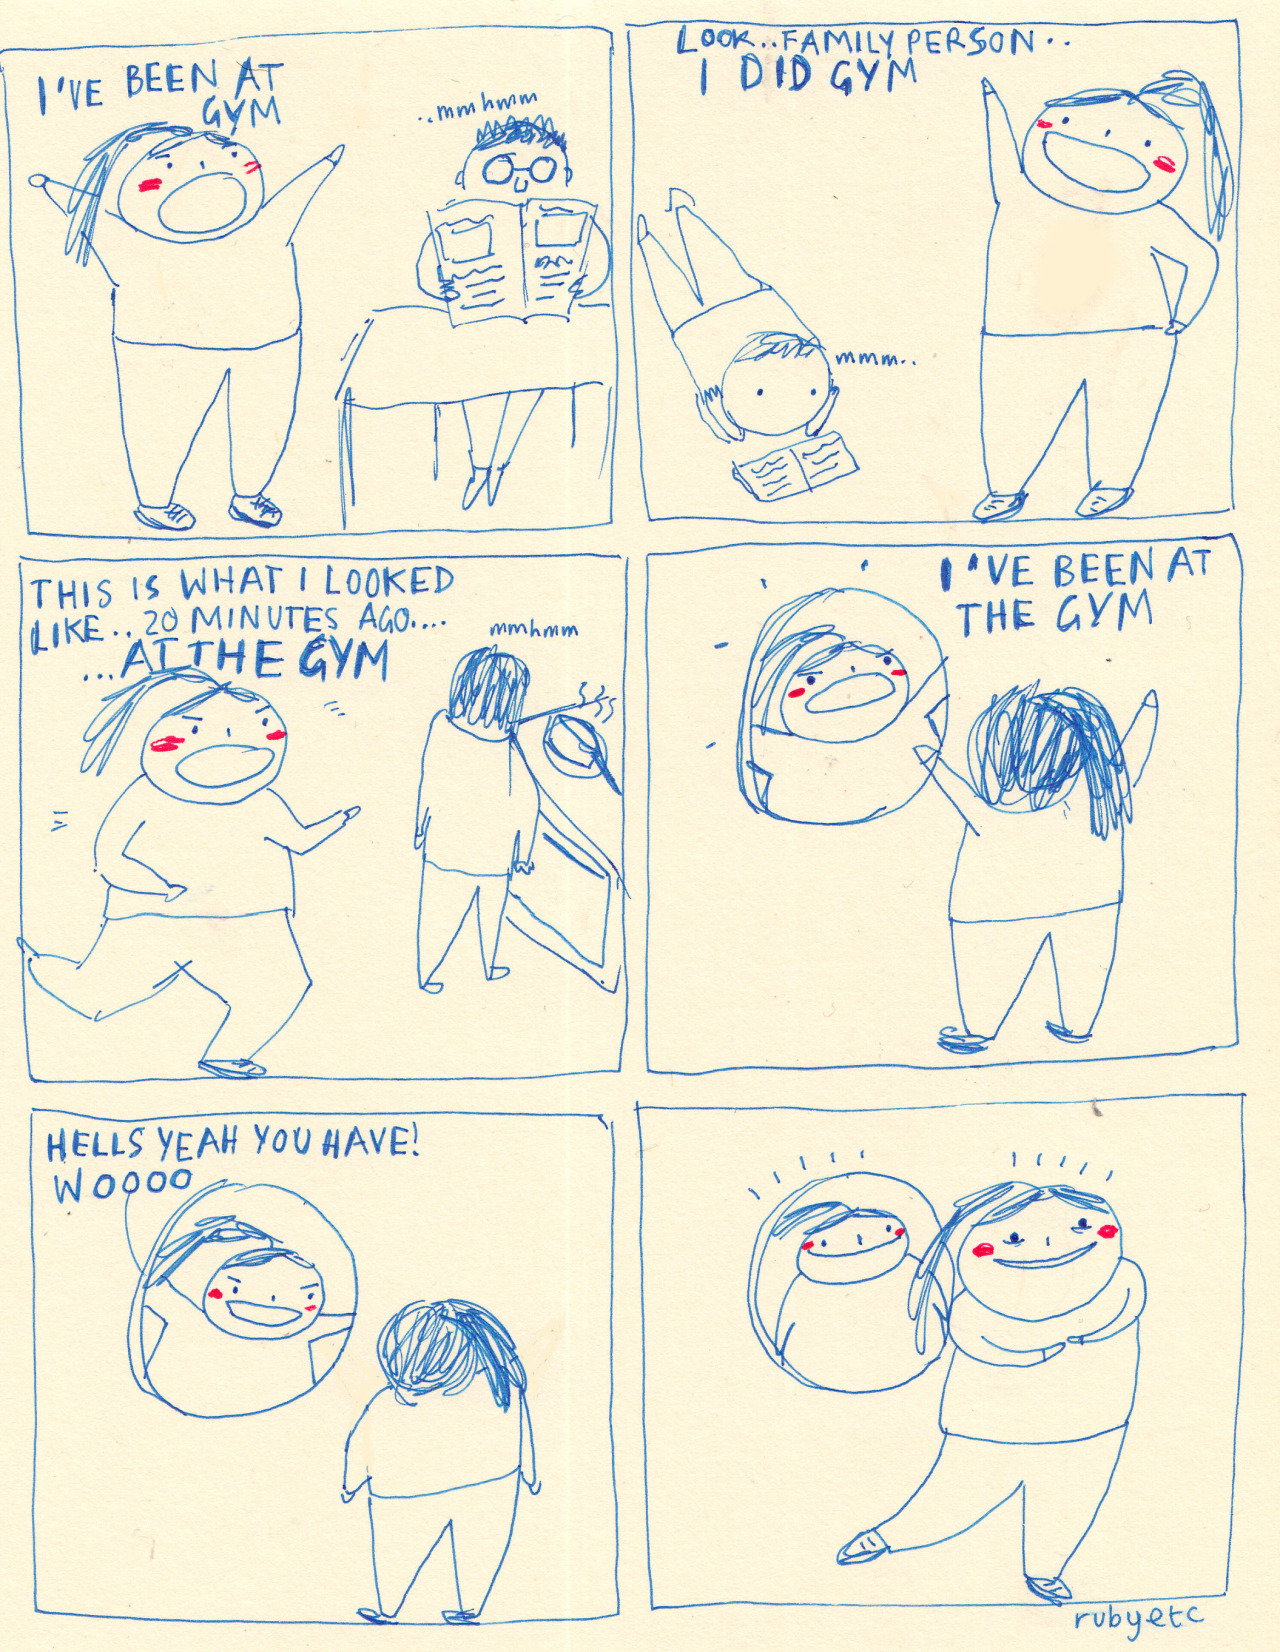 rubyetc:  This is a drawing about exercise